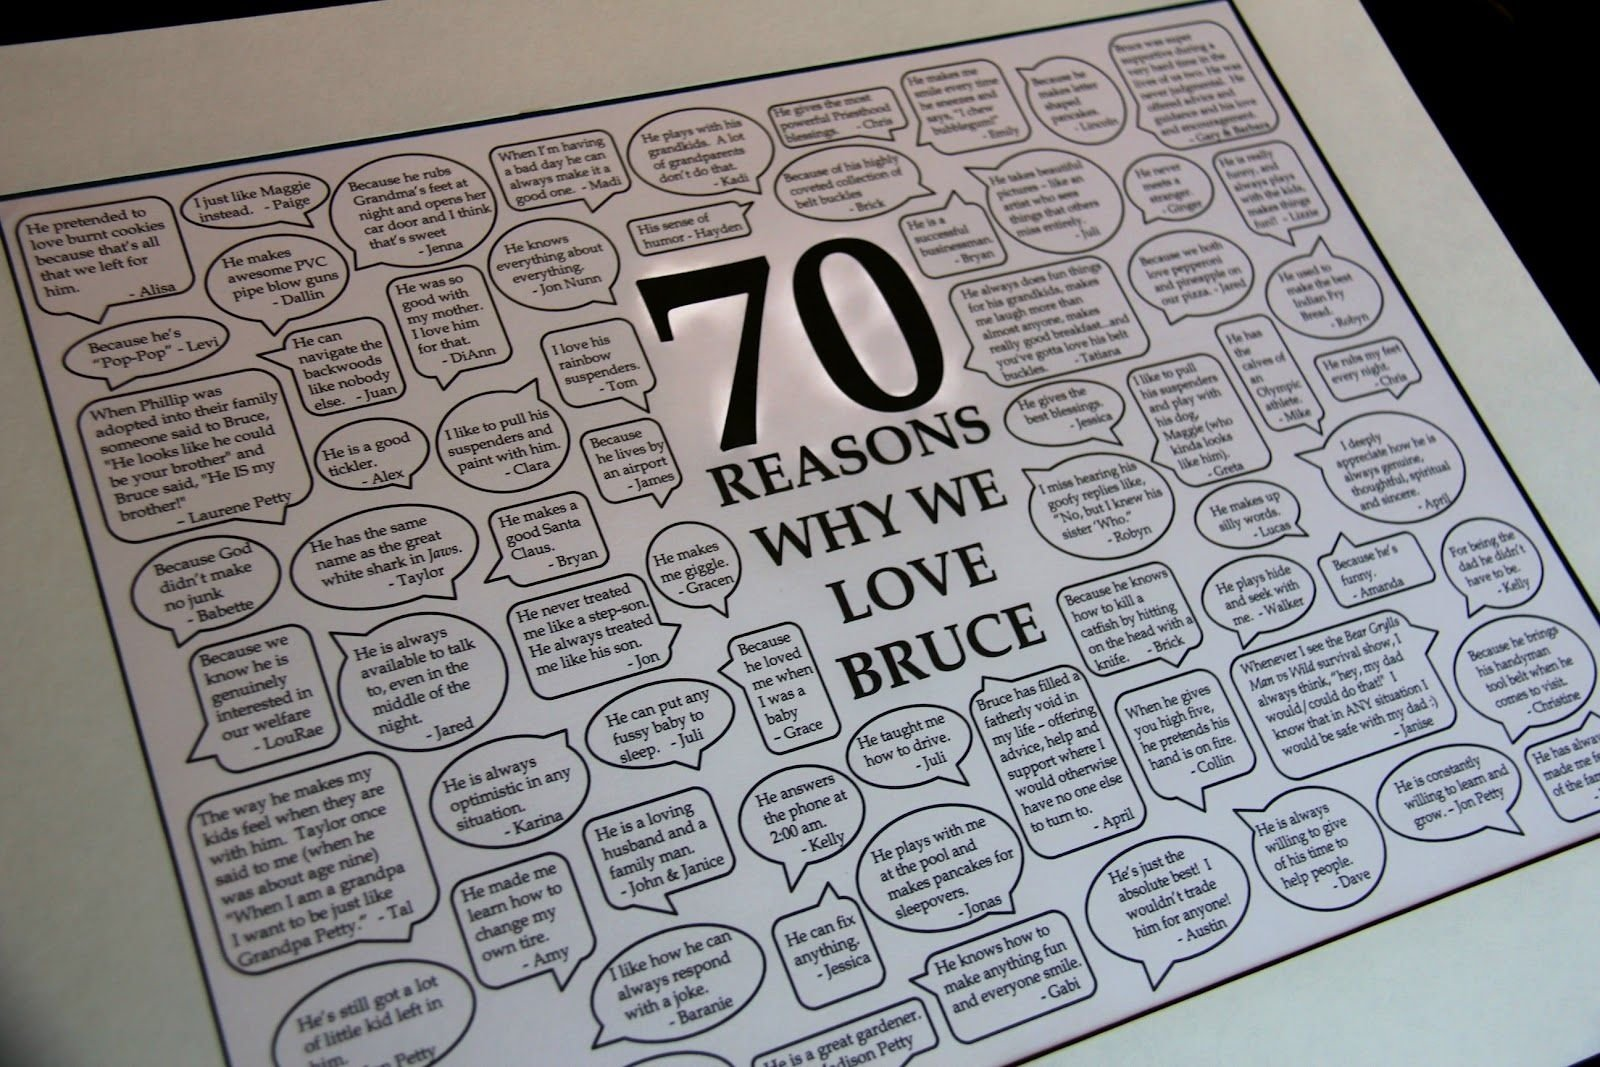 10 Nice Ideas For A 70Th Birthday Party great idea display reasons why everyone loves the birthday boy girl 7 2021